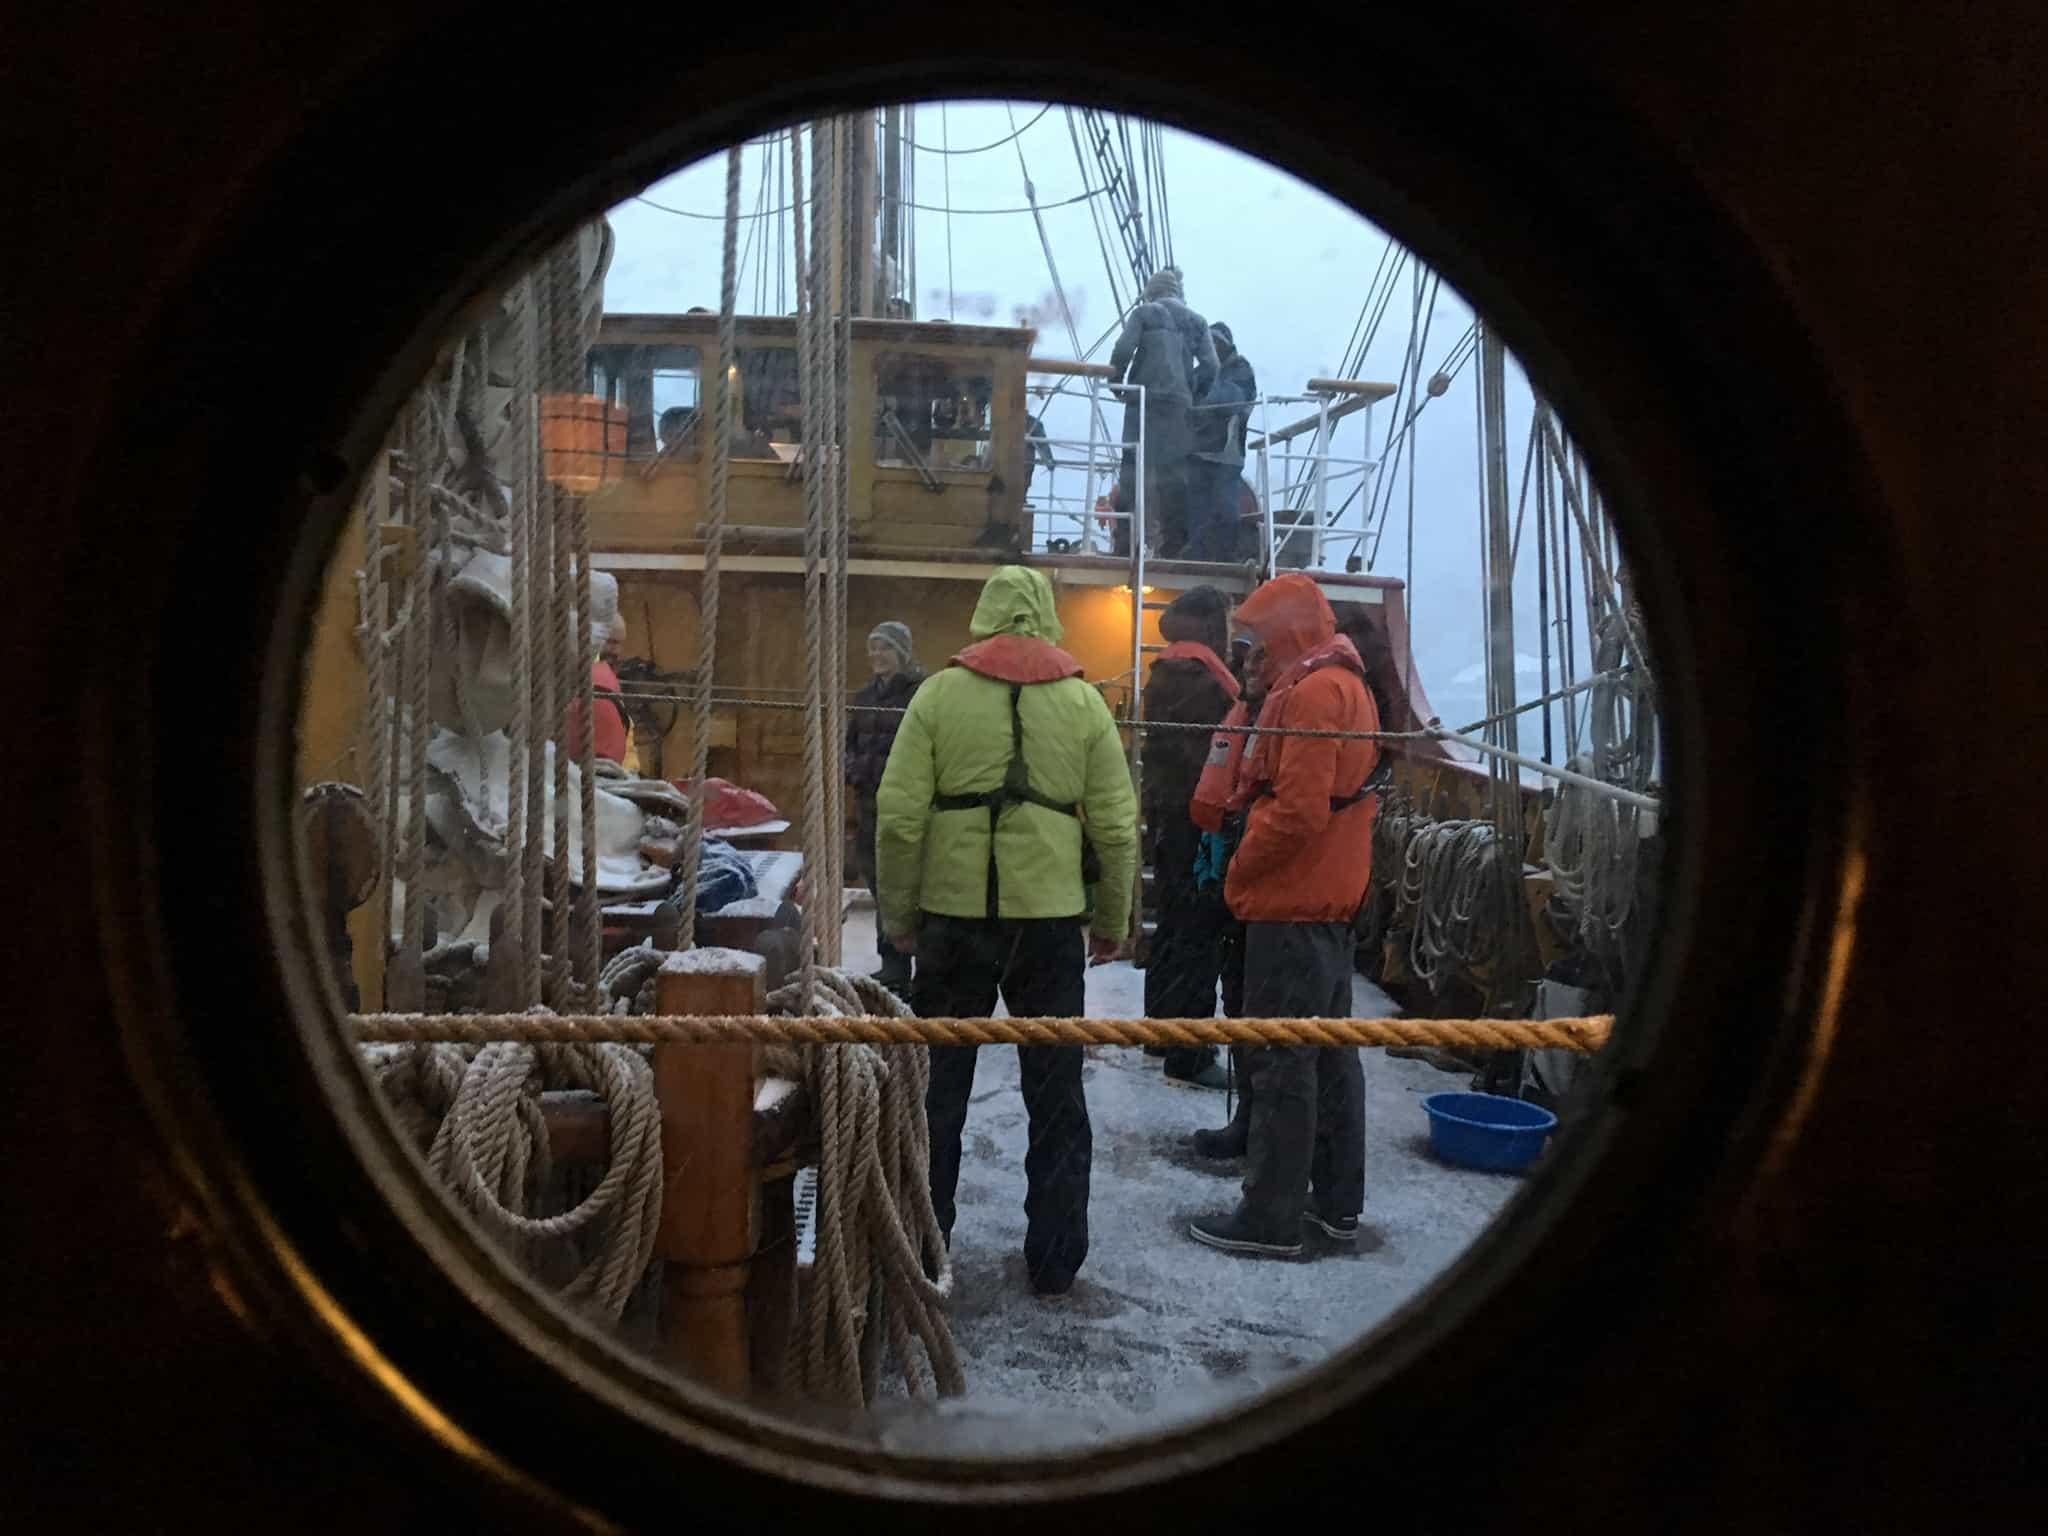 Bark Europa, view through the port hole in Antarctica